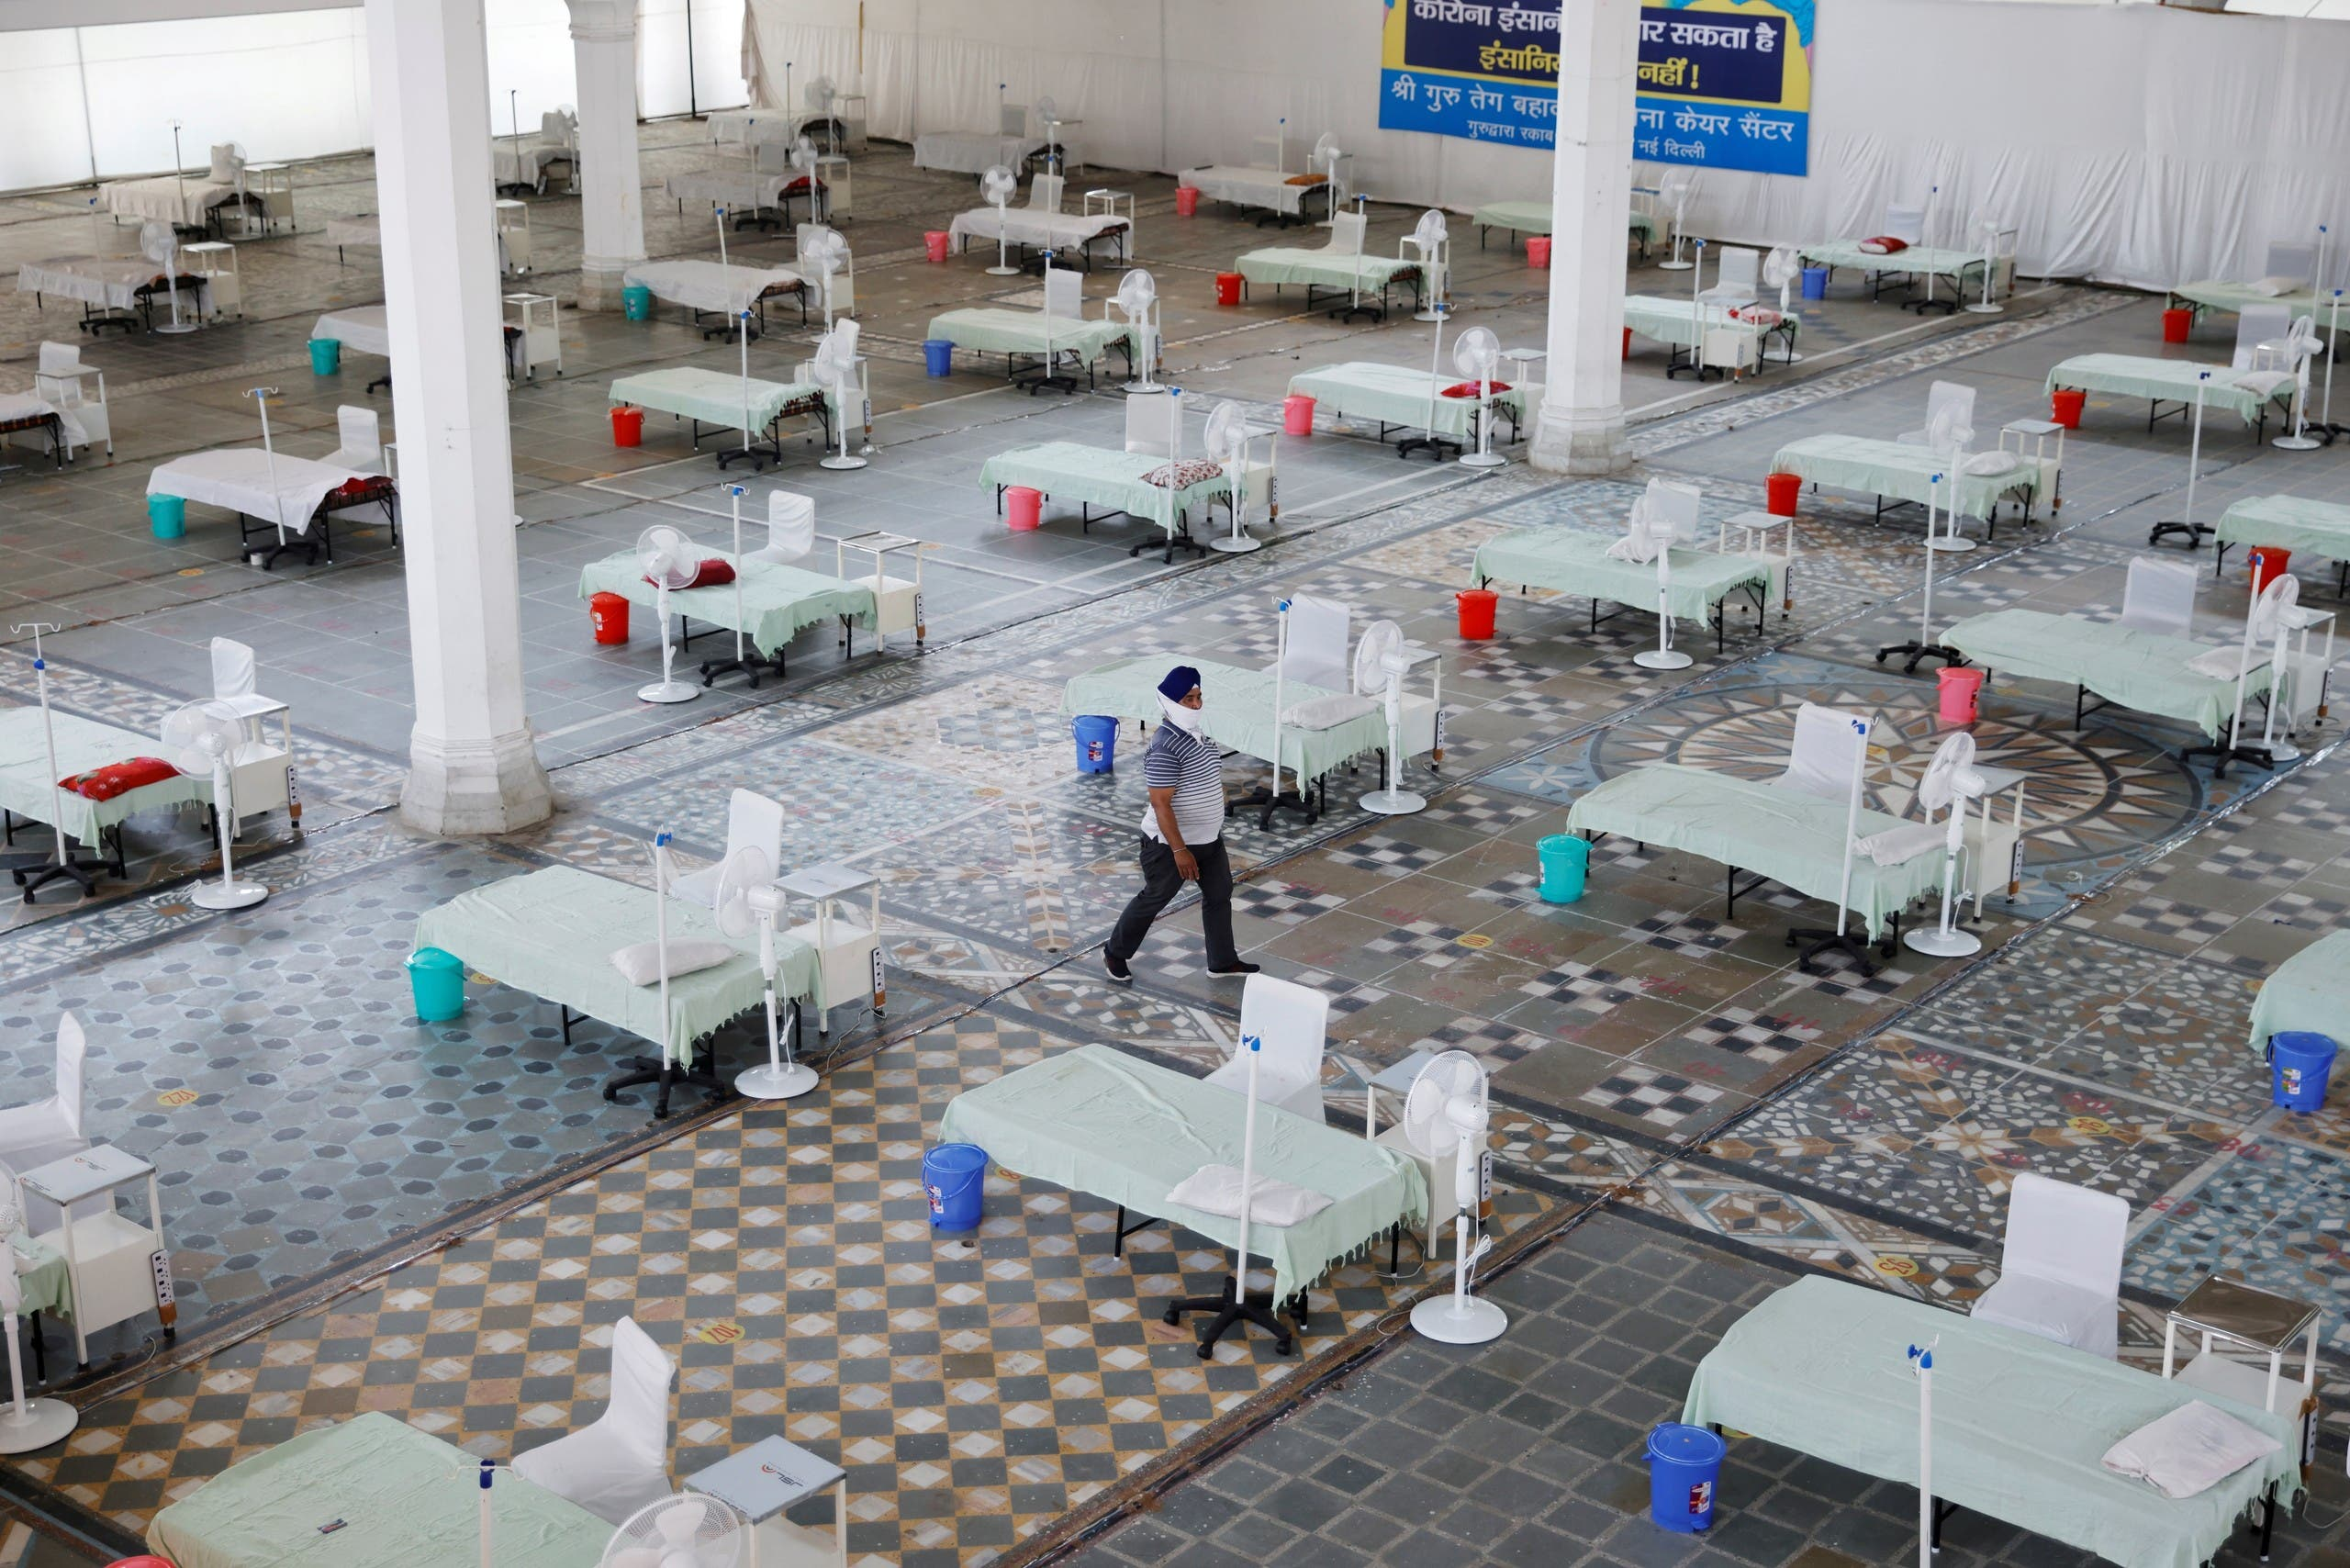 Beds are seen inside a Gurudwara (Sikh Temple) converted into a coronavirus disease (COVID-19) care facility amidst the spread of the COVID-19 in New Delhi, India May 5, 2021. (File photo: Reuters)